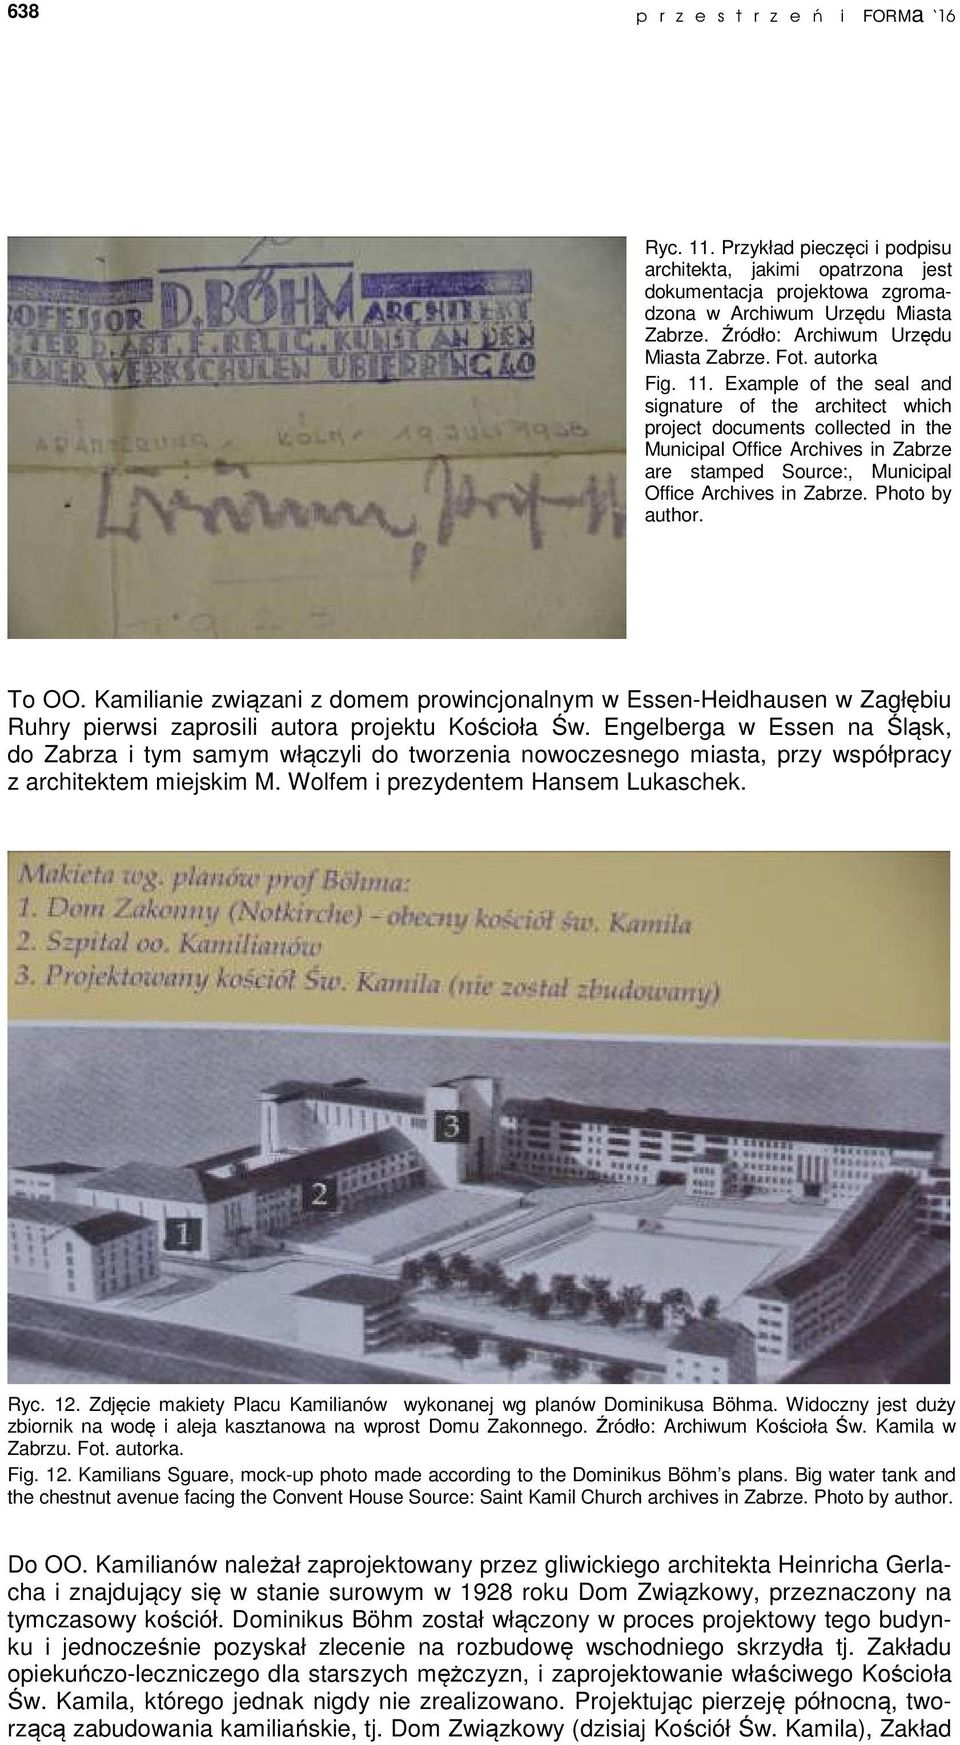 Example of the seal and signature of the architect which project documents collected in the Municipal Office Archives in Zabrze are stamped Source:, Municipal Office Archives in Zabrze.